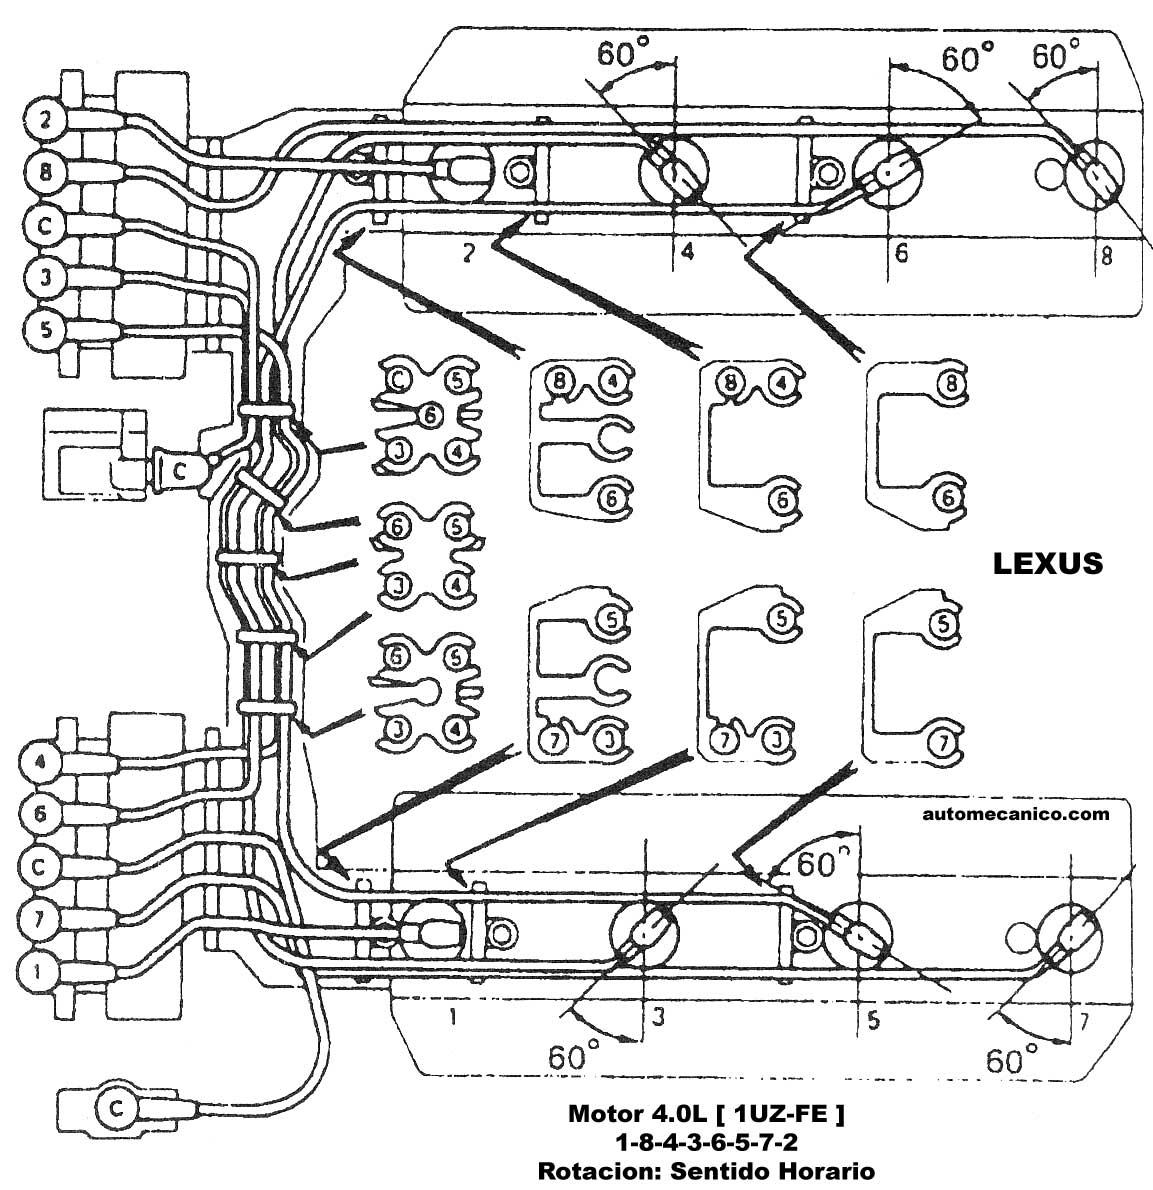 Mitsubishi Raider Engine Diagram Auto Electrical Wiring Precis Mercedes Diesel